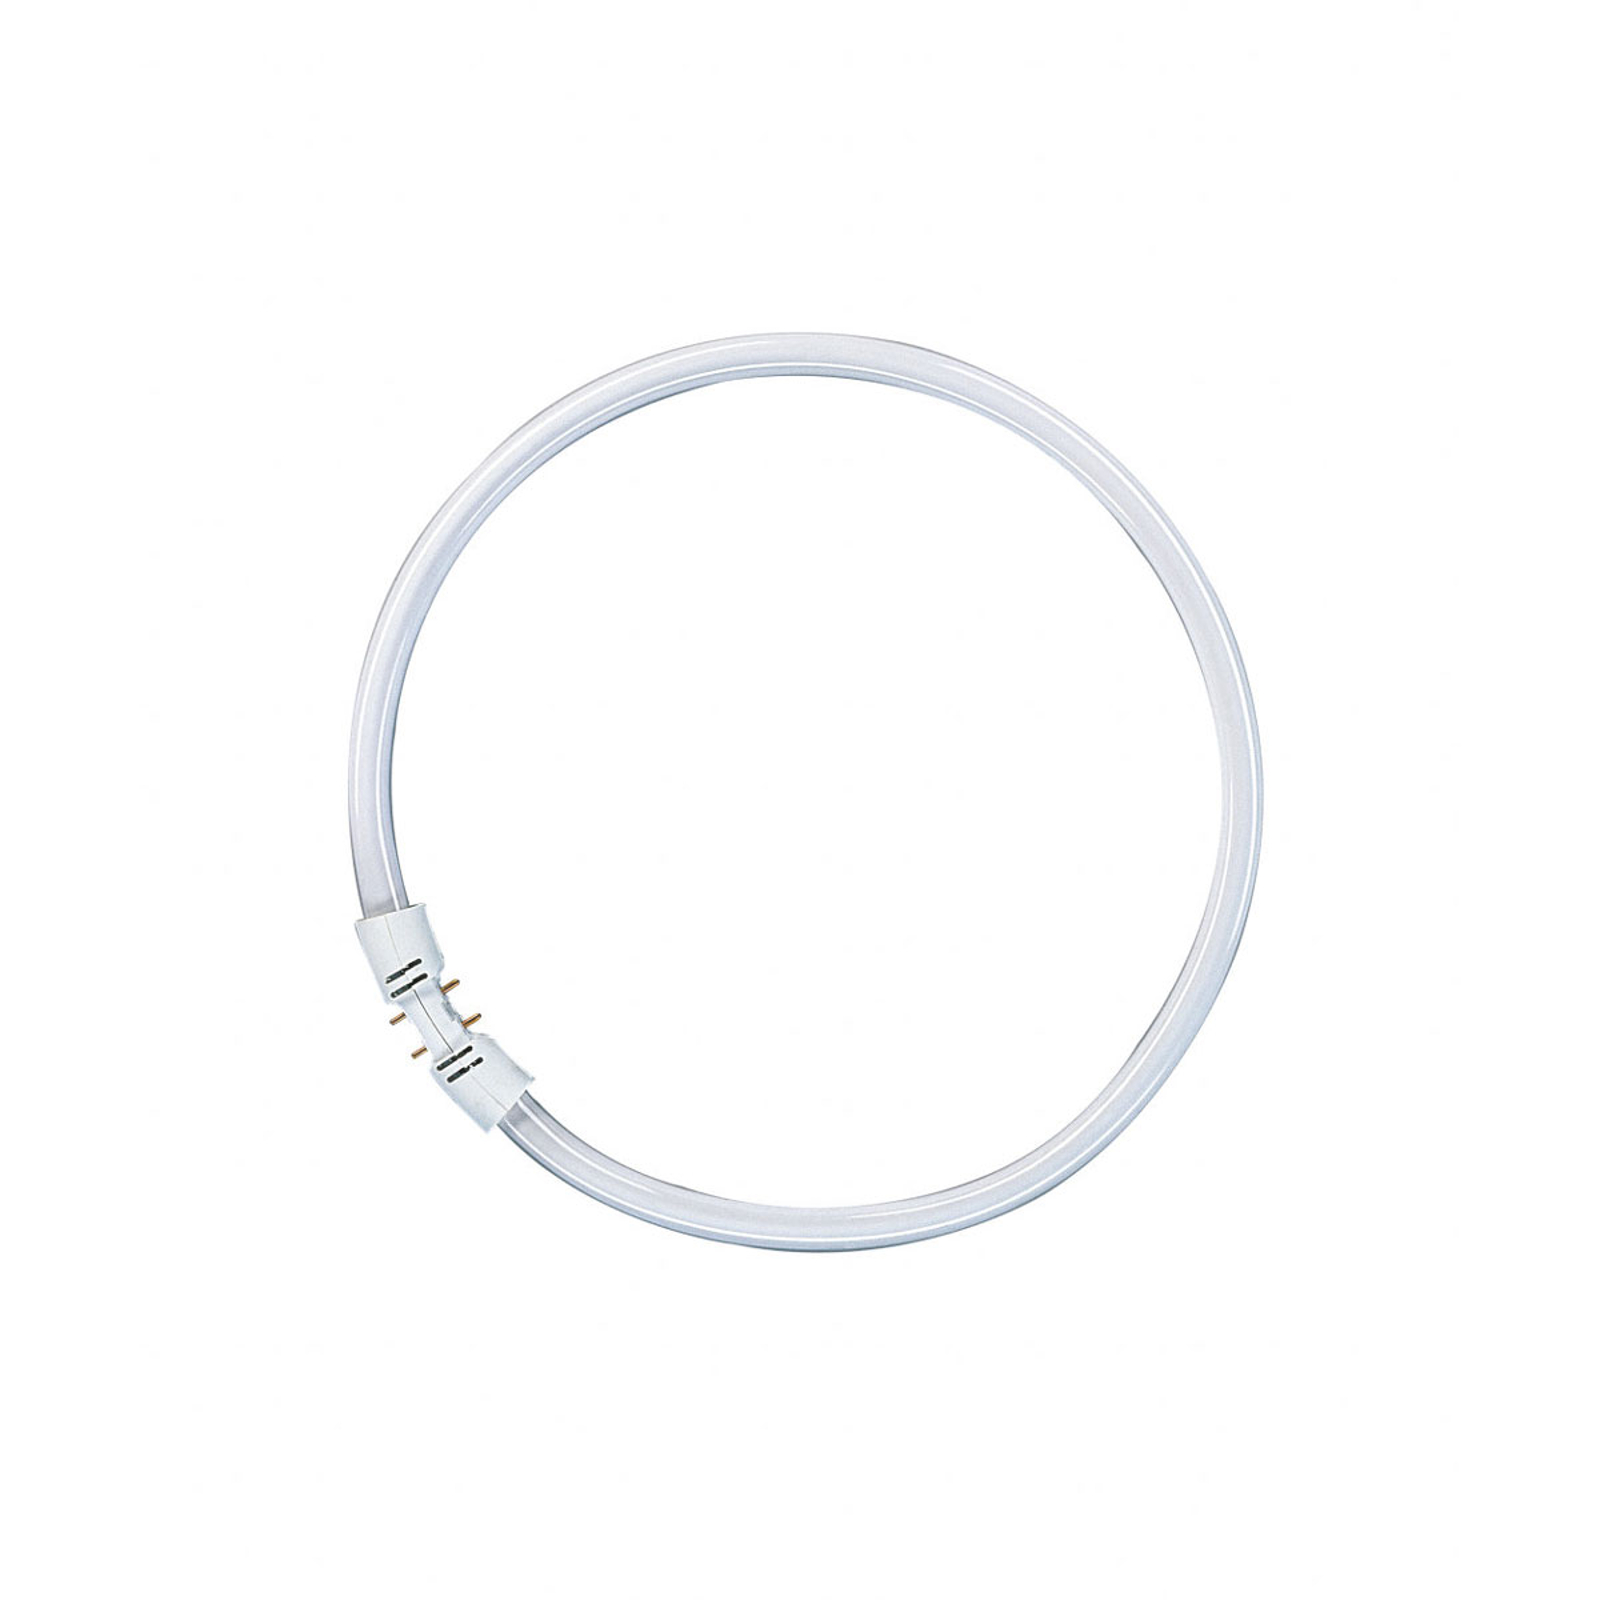 2Gx13 LUMILUX T5 Ring-Leuchtstofflampe 40W 840